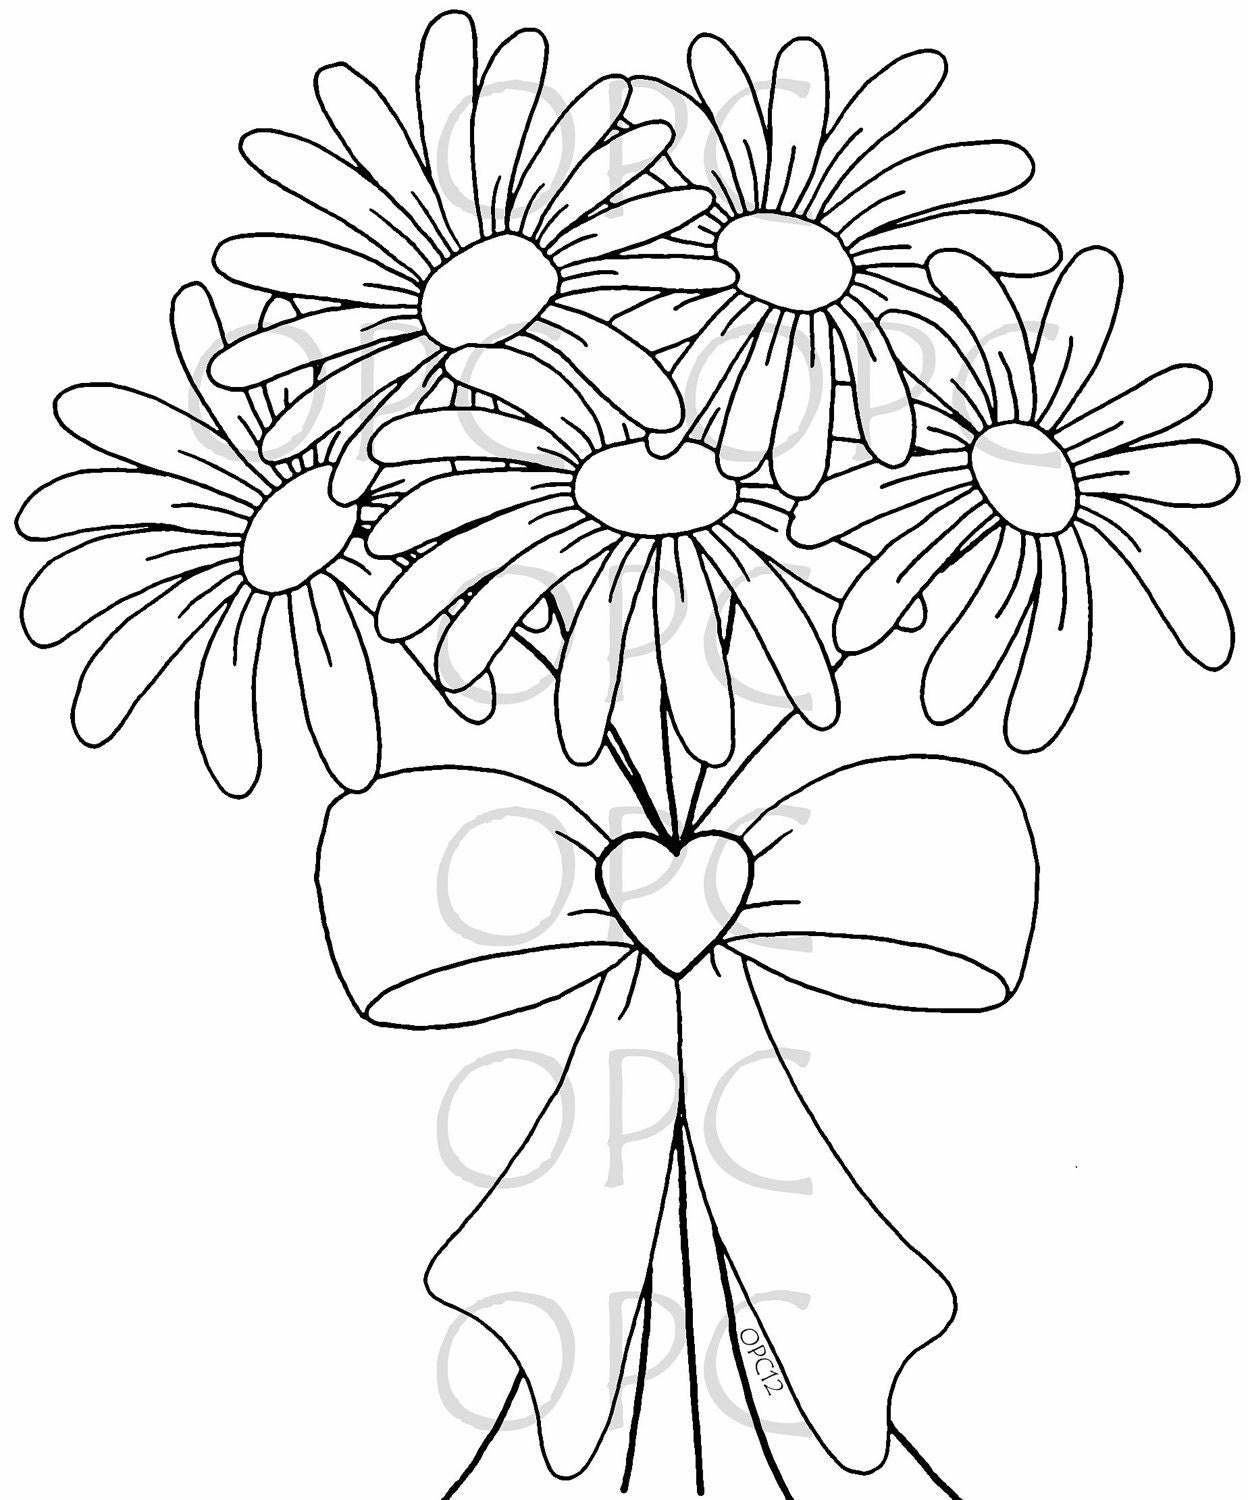 Gerber daisy free colouring pages for Daisy coloring page